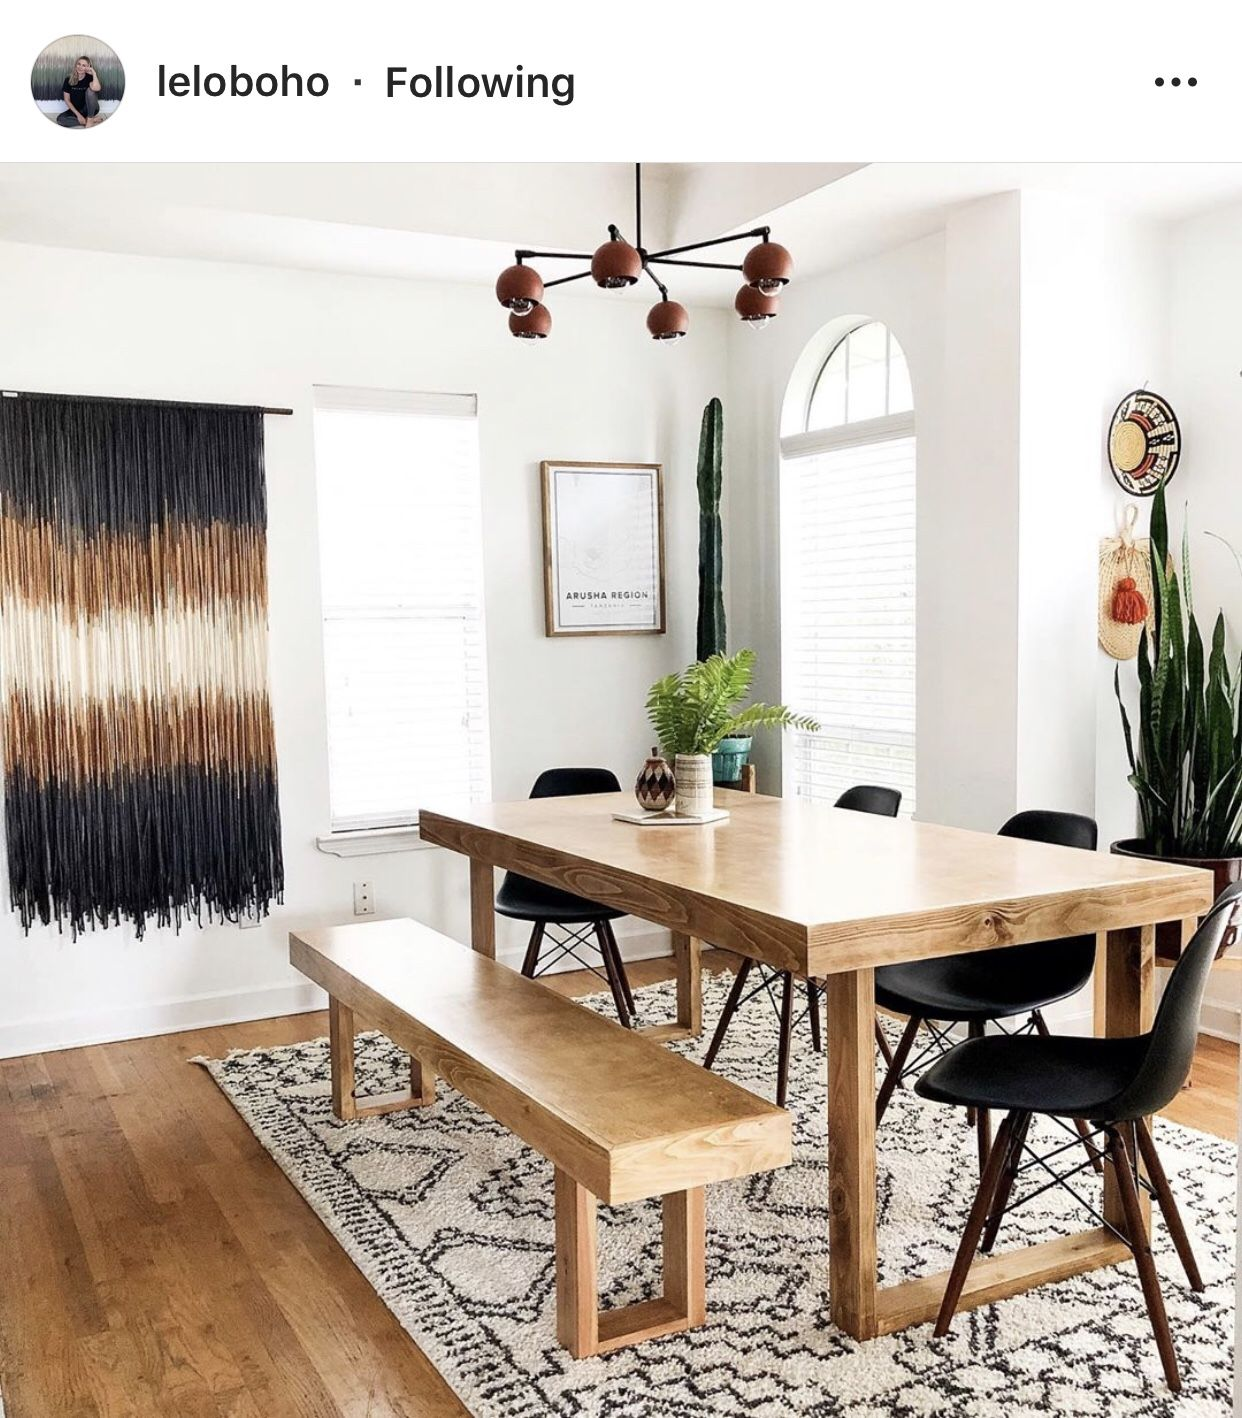 Modern Desert in 2020 (With images) | Boho dining room ...